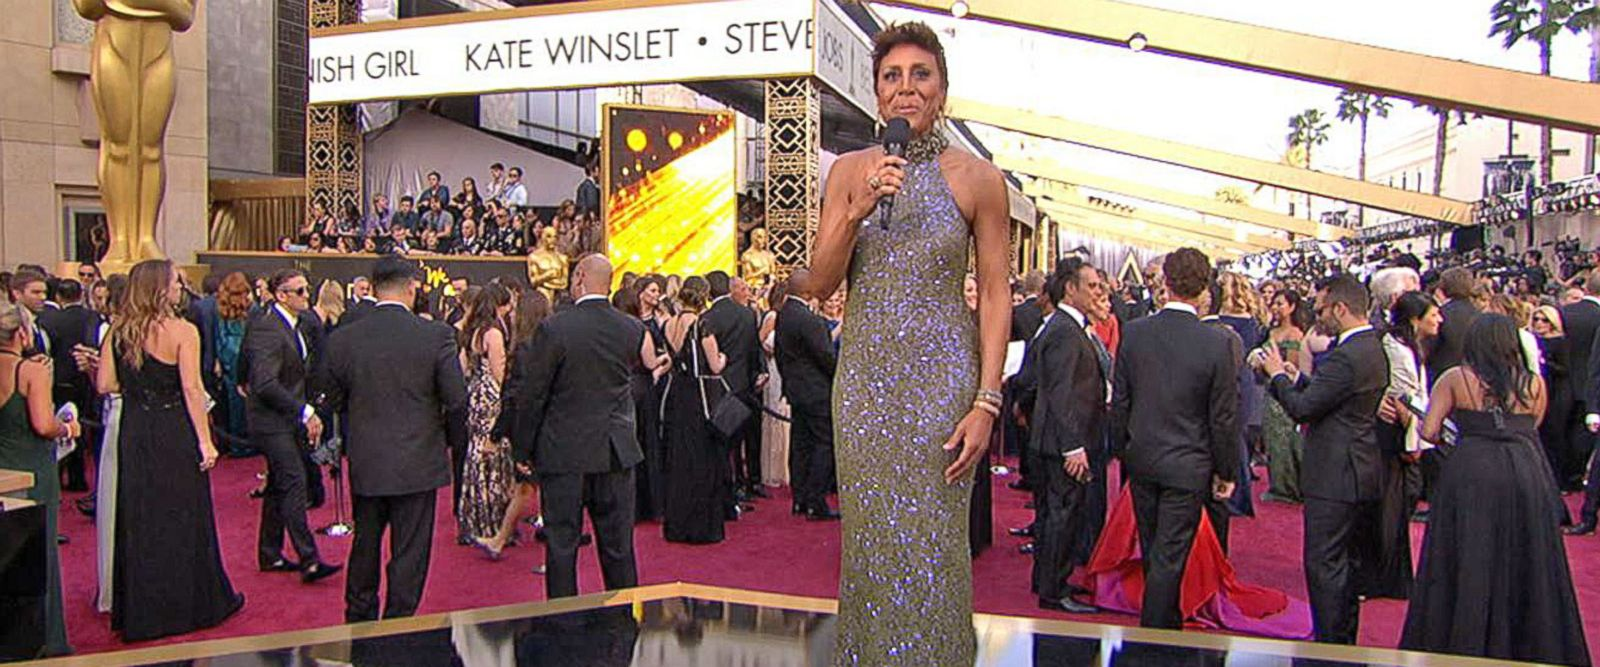 VIDEO: 2017 Oscars red carpet pre-show hosts announced on 'GMA'